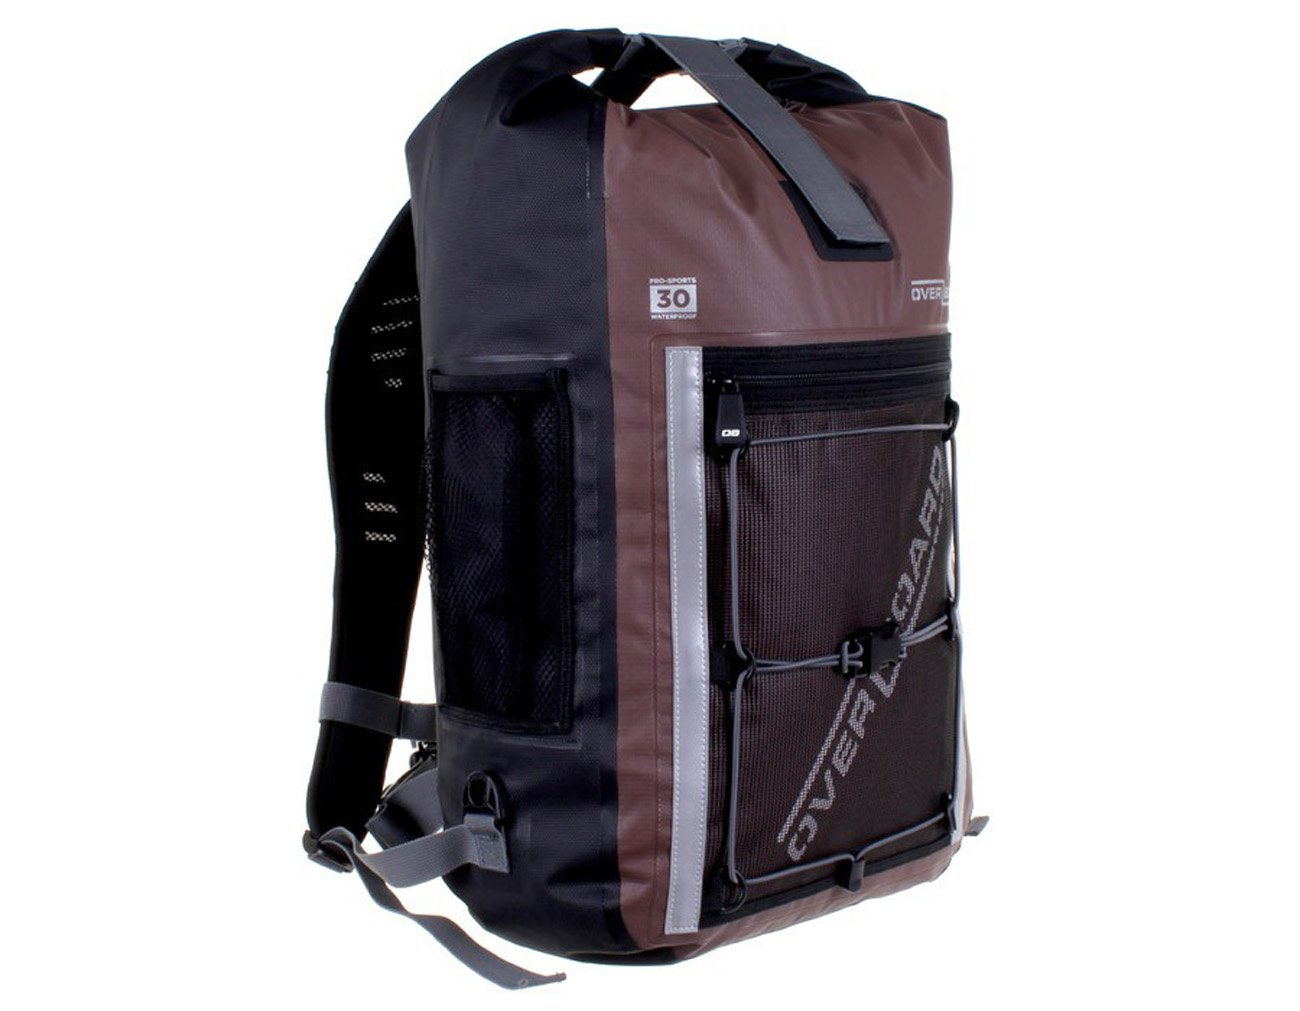 Overboard Pro Light Waterproof Backpack 30 Litres- Fenix Toulouse ... c860a284fdc96